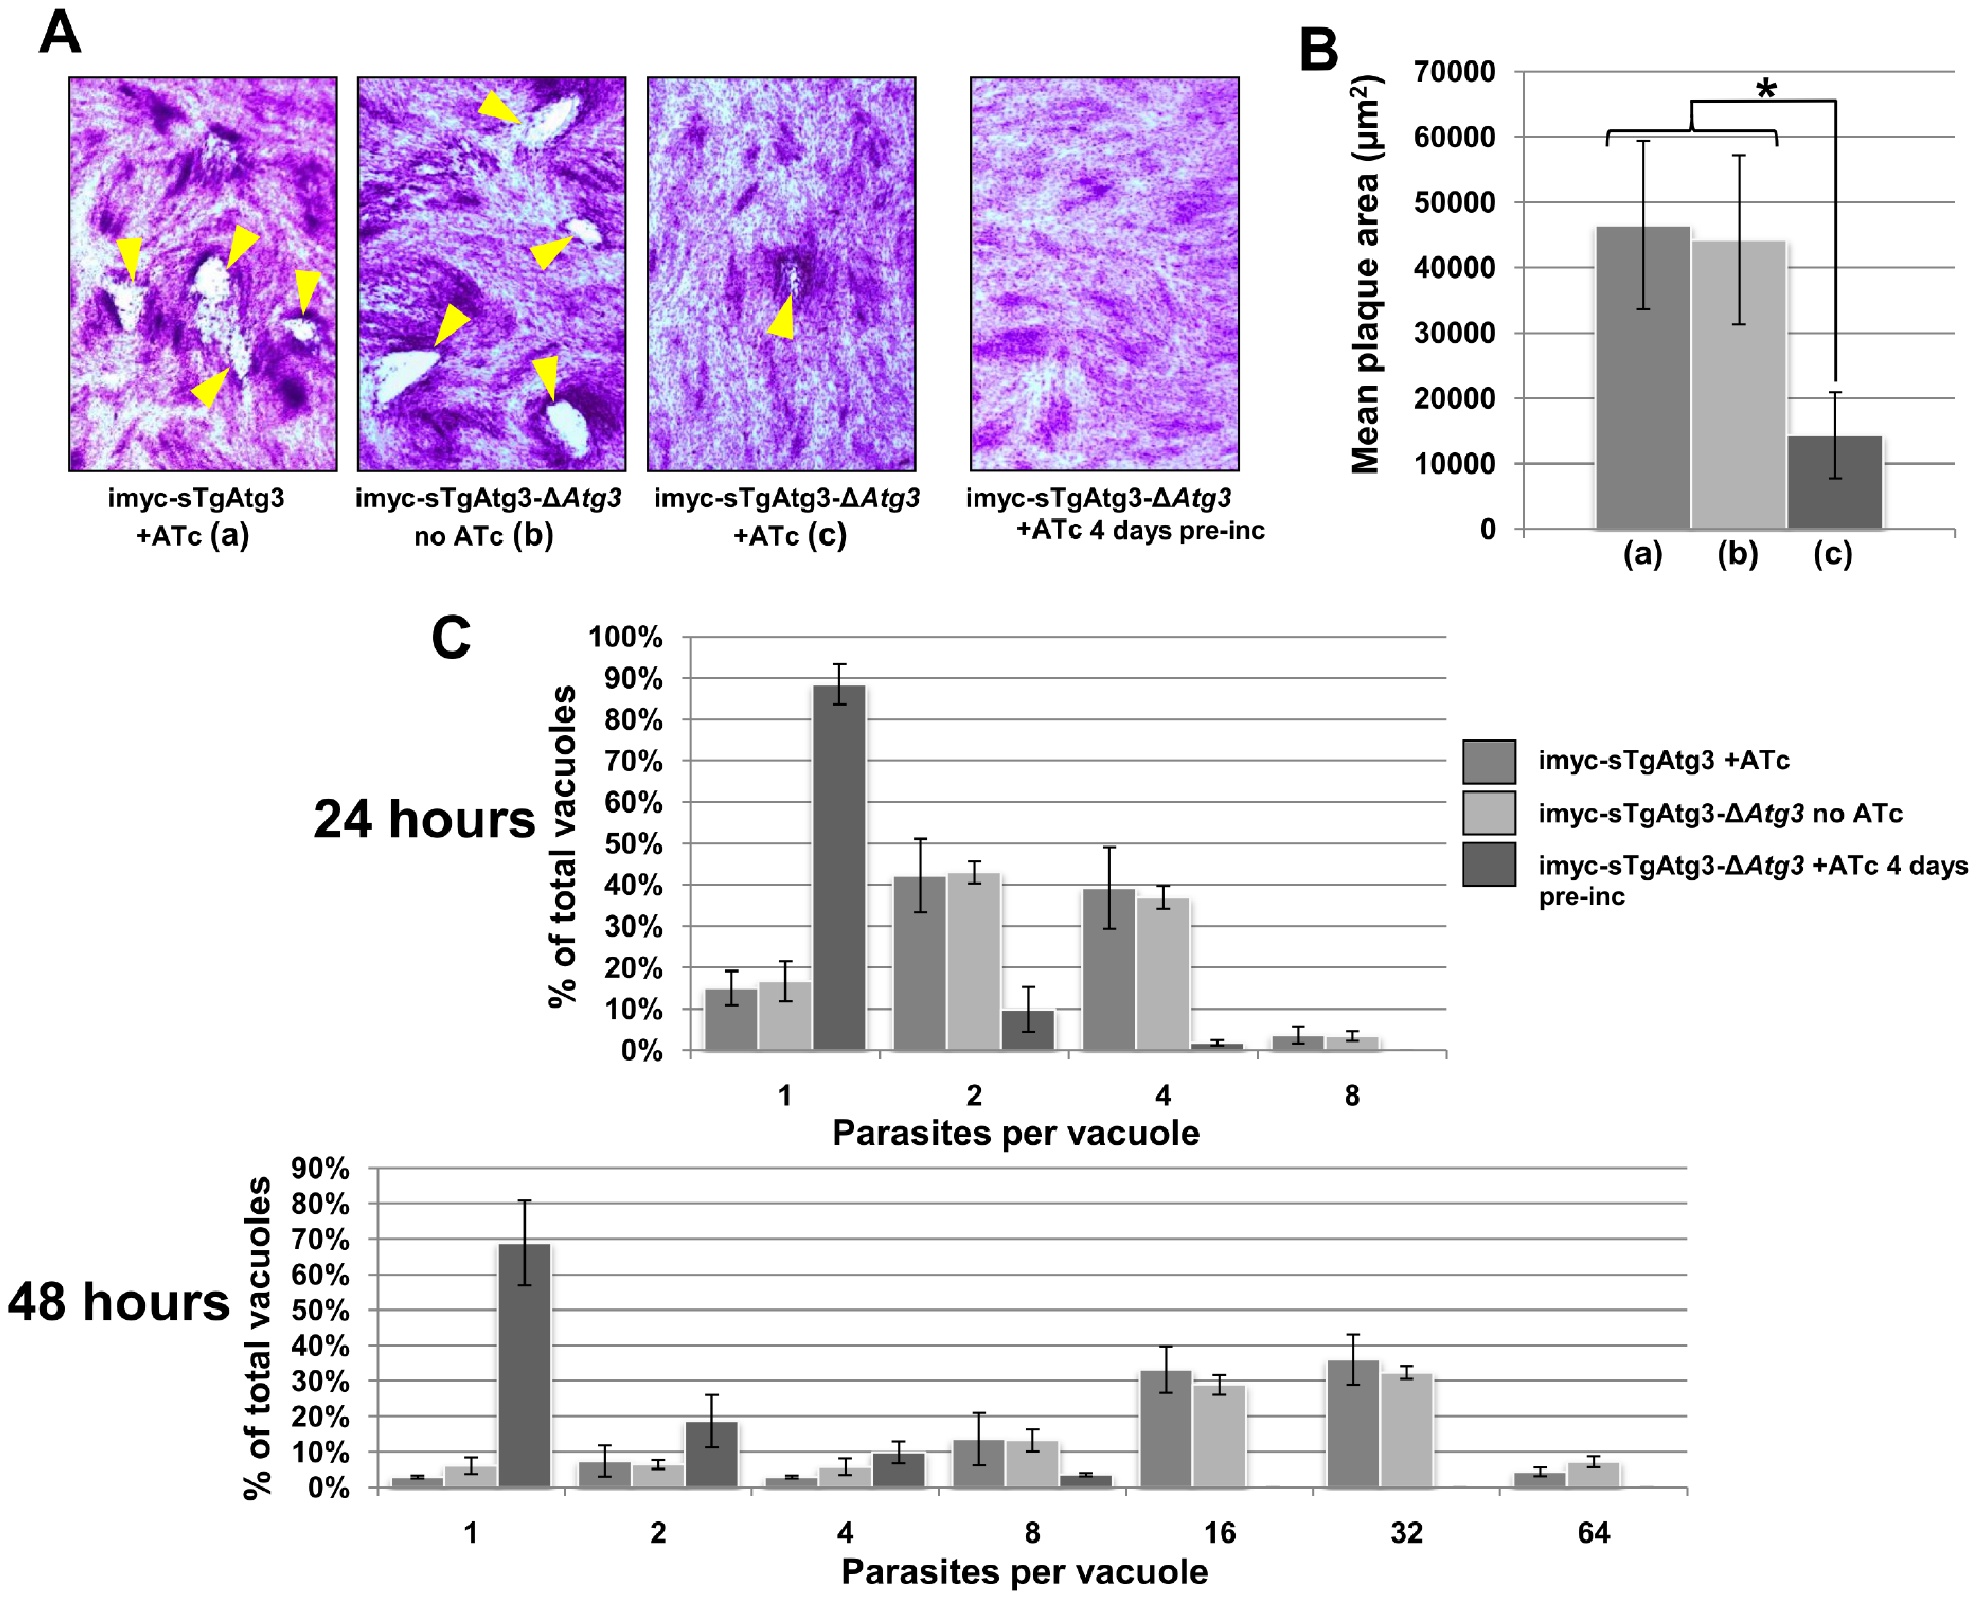 Depletion of TgAtg3 causes a growth defect for intracellular tachyzoites.